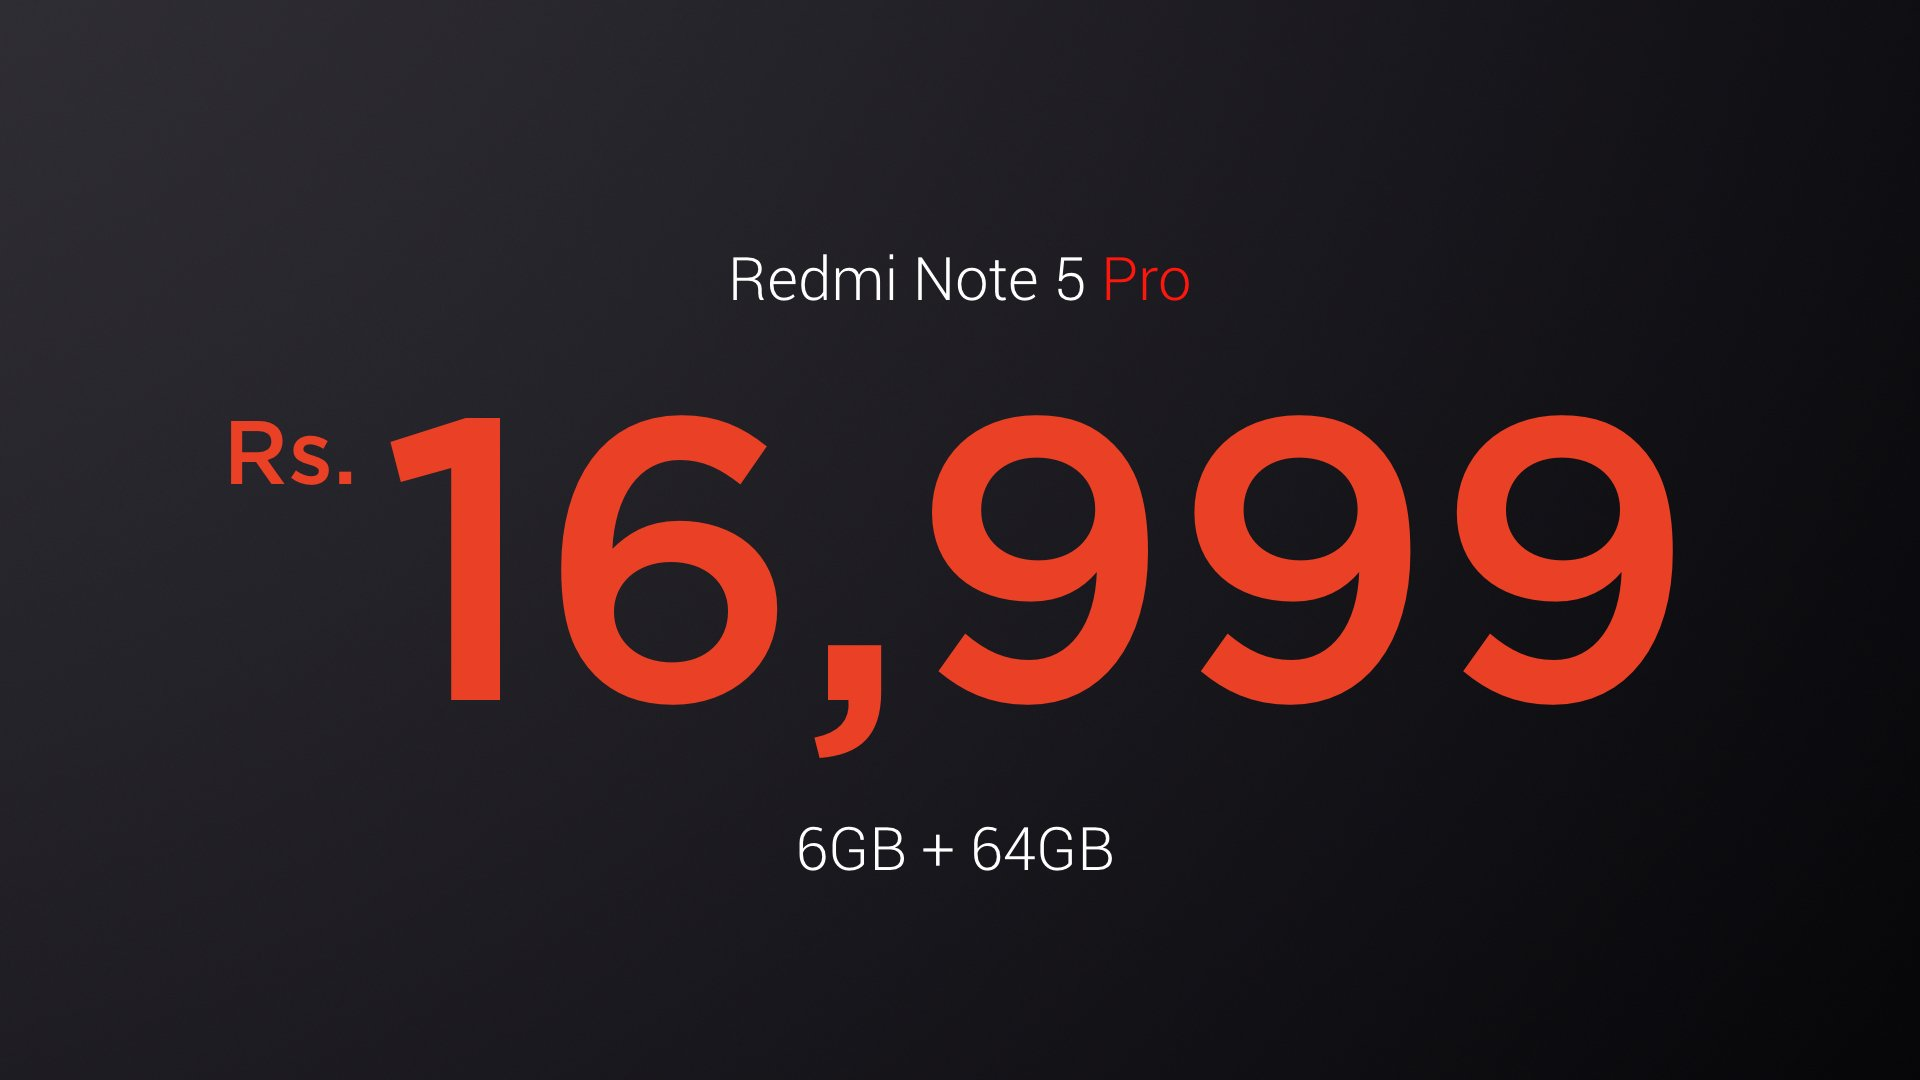 Redmi Note 5 - 6GB + 64GB